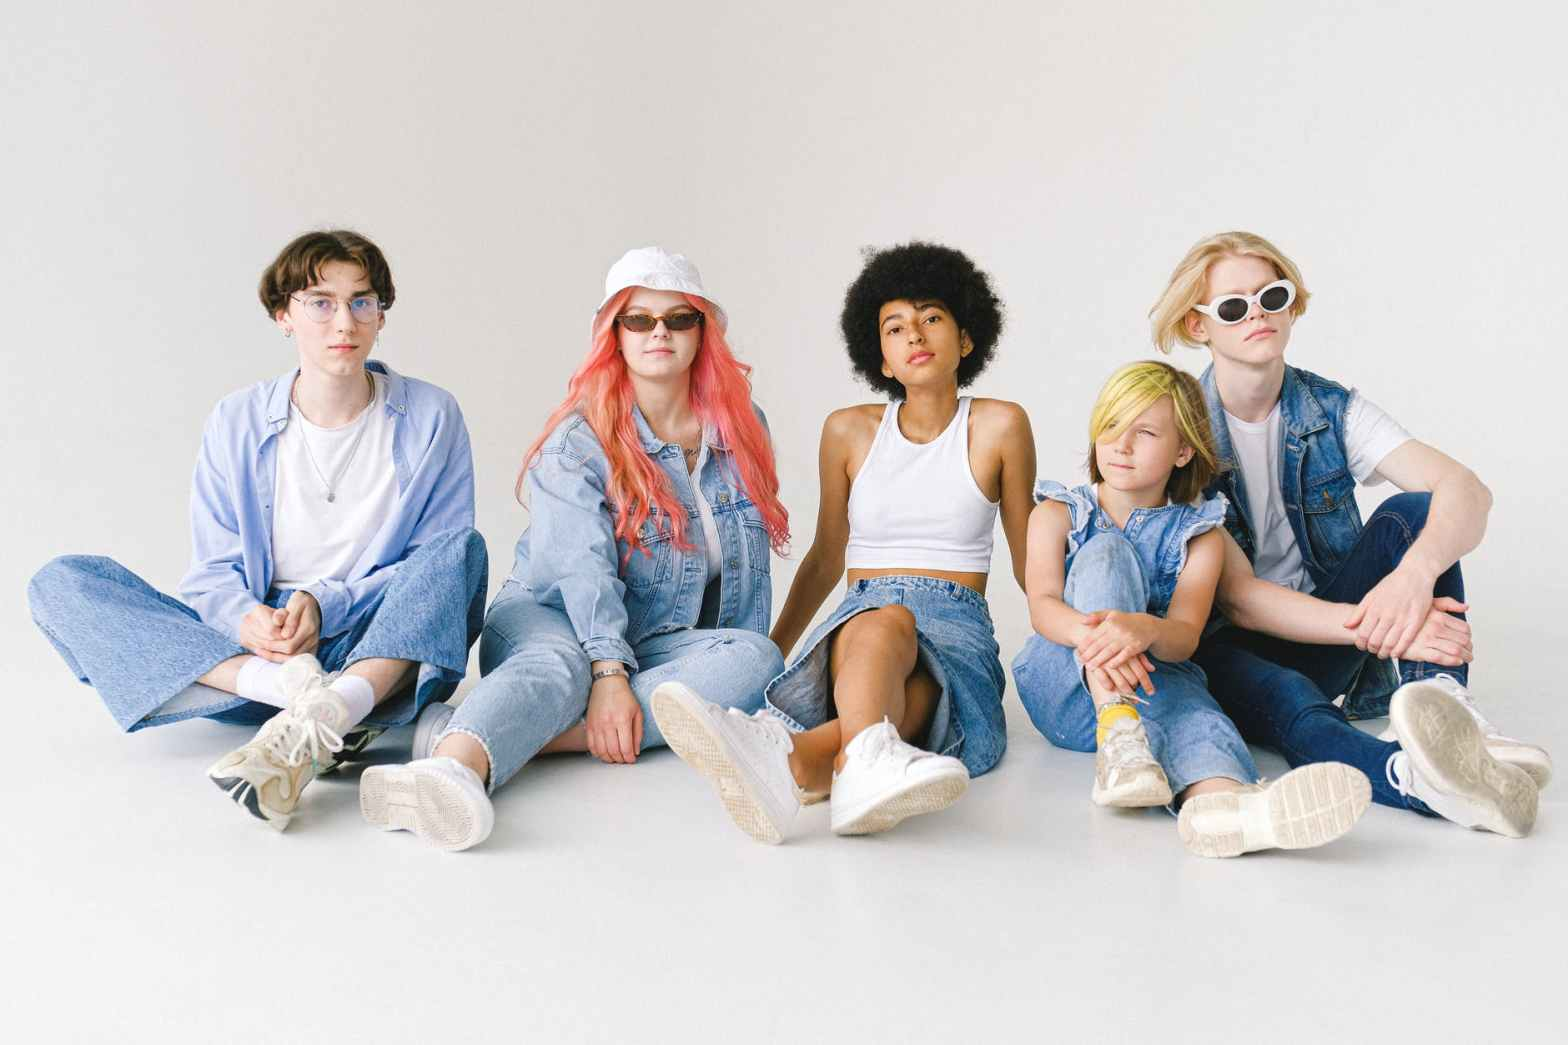 stylish multiracial models in denim outfits sitting on floor